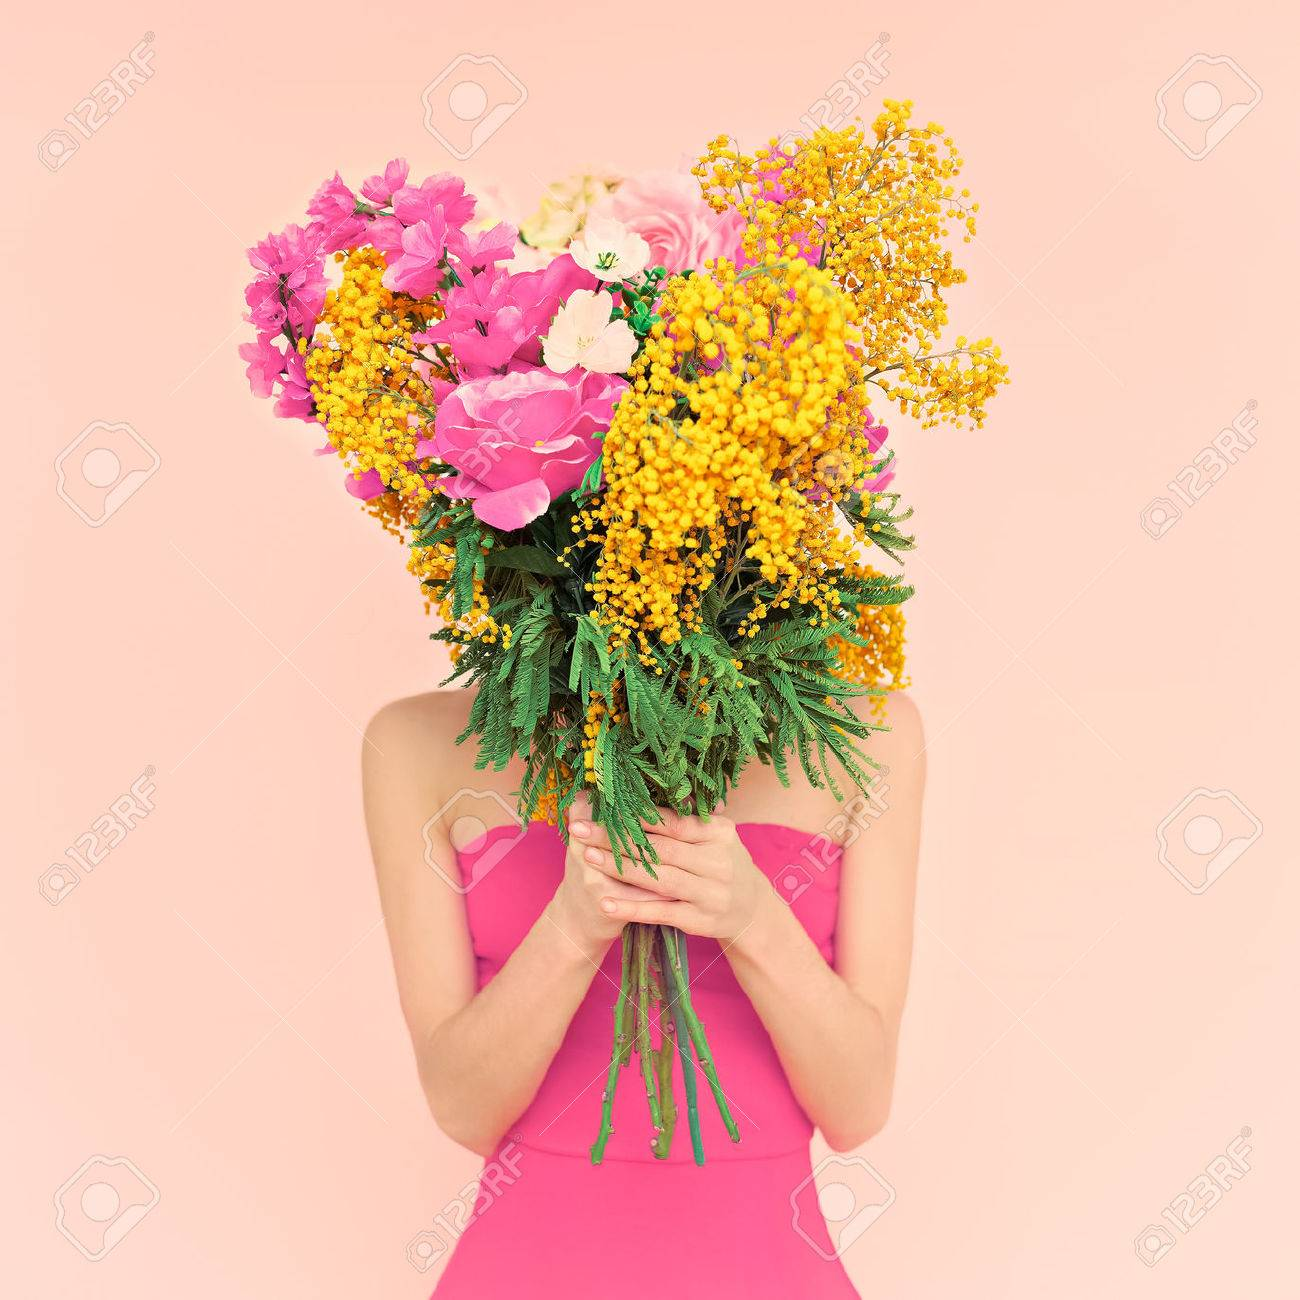 Girl with bouquet of flowers in her hands flowers spring romance girl with bouquet of flowers in her hands flowers spring romance march izmirmasajfo